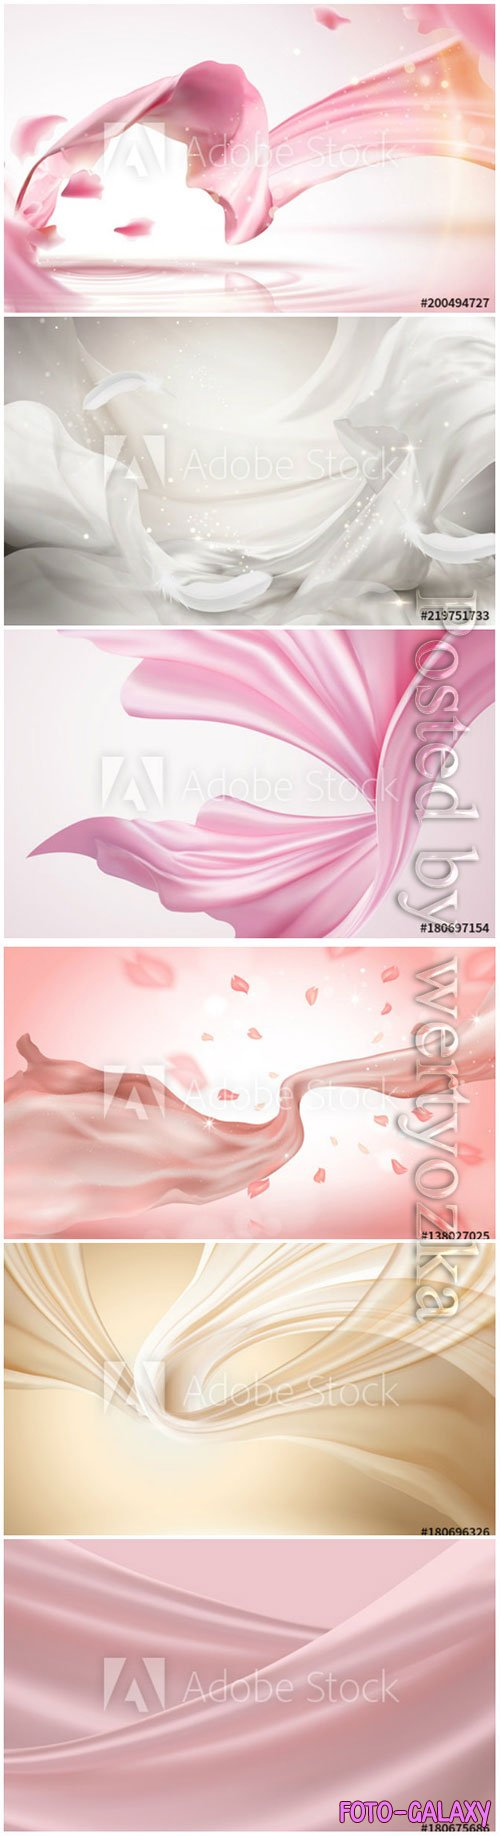 Silky chiffon elements vector illustrations